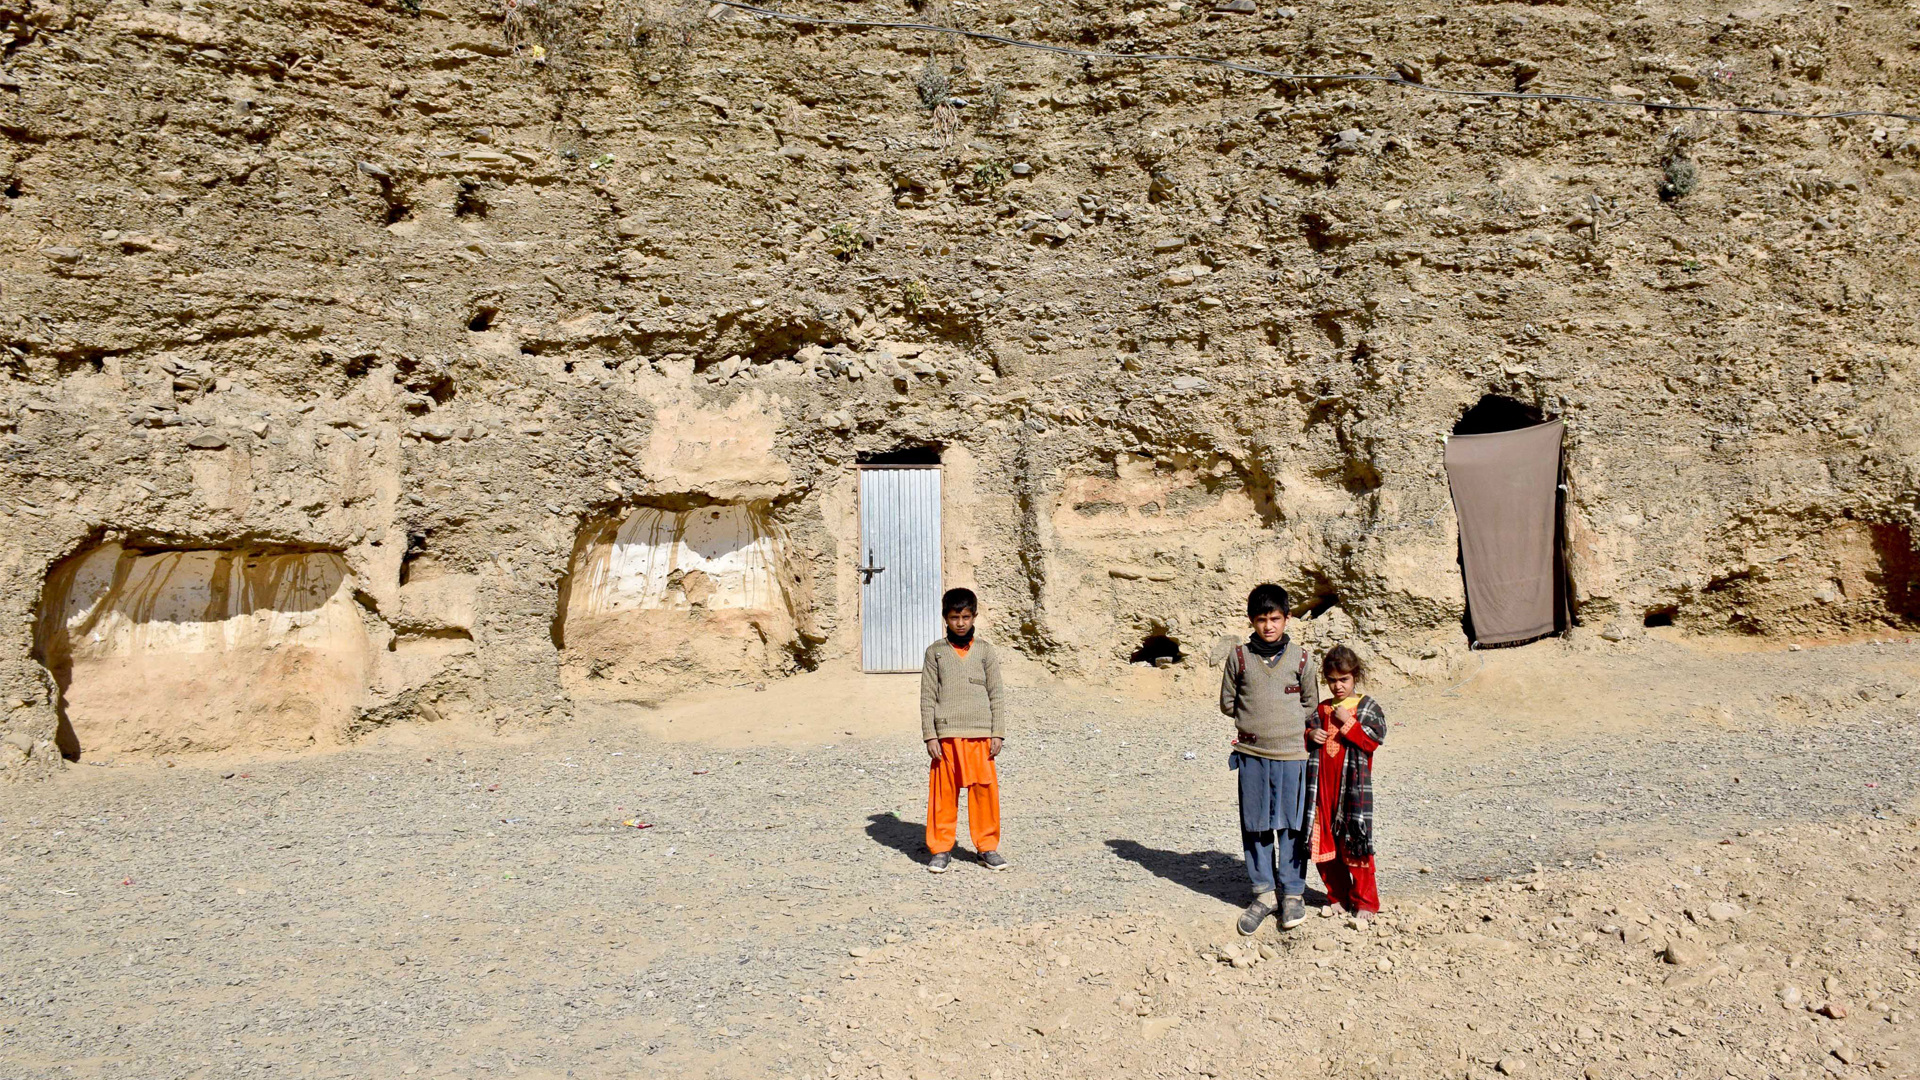 A Precarious Existence For The Cave Dwellers Of Torkham